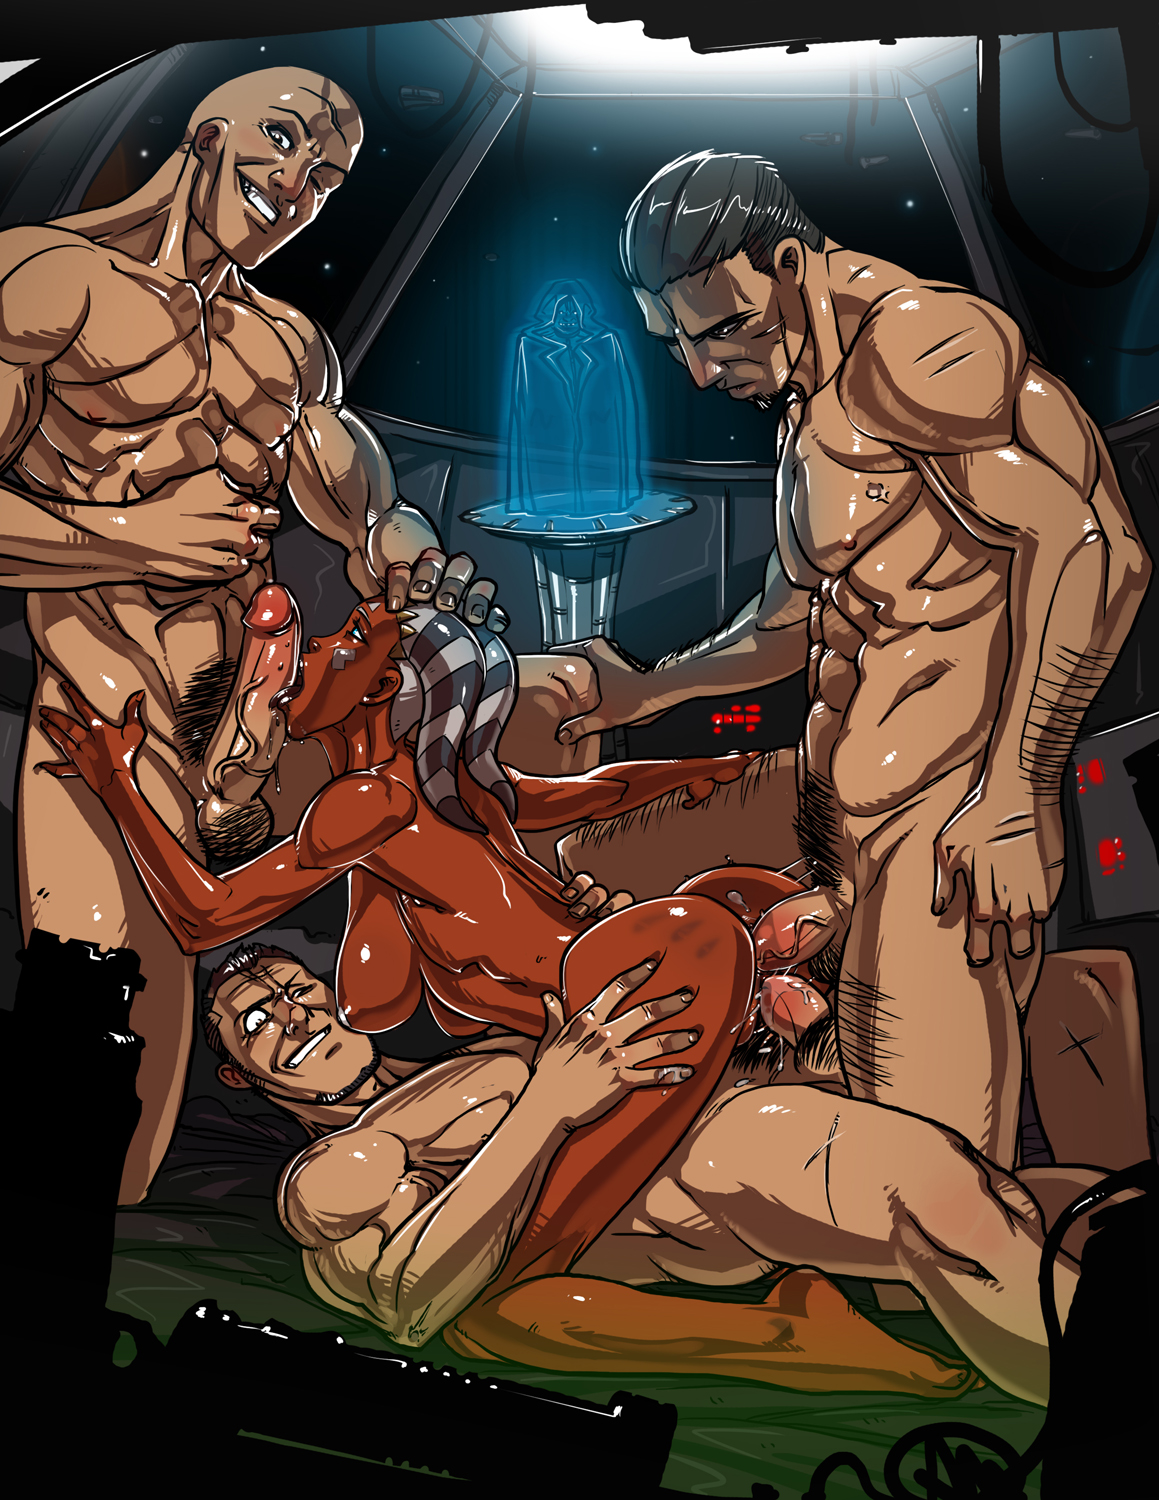 Star wars porn arts exposed super sexygirls